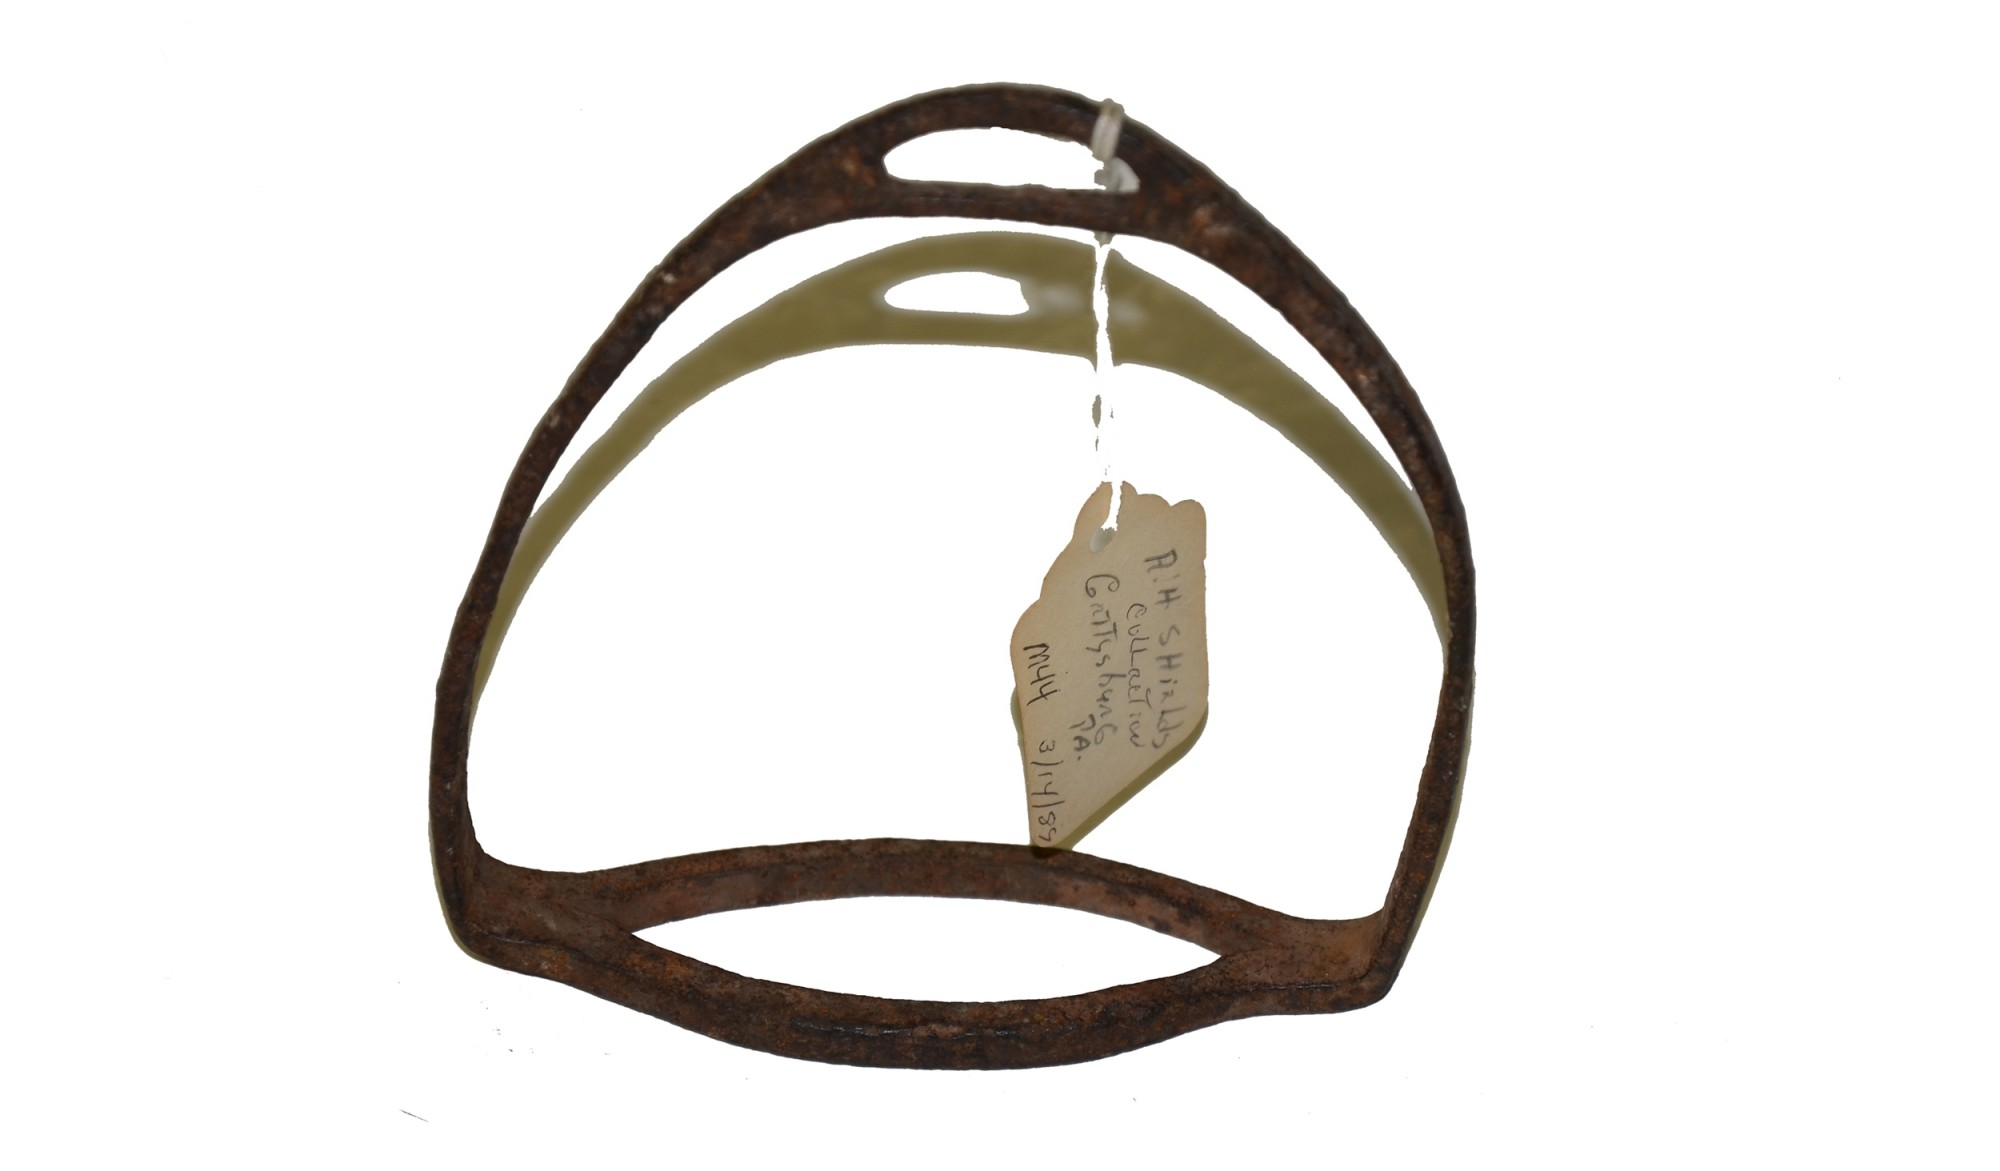 CONFEDERATE IRON STIRRUP FROM THE SHIELDS MUSEUM OF GETTYSBURG ARTIFACTS